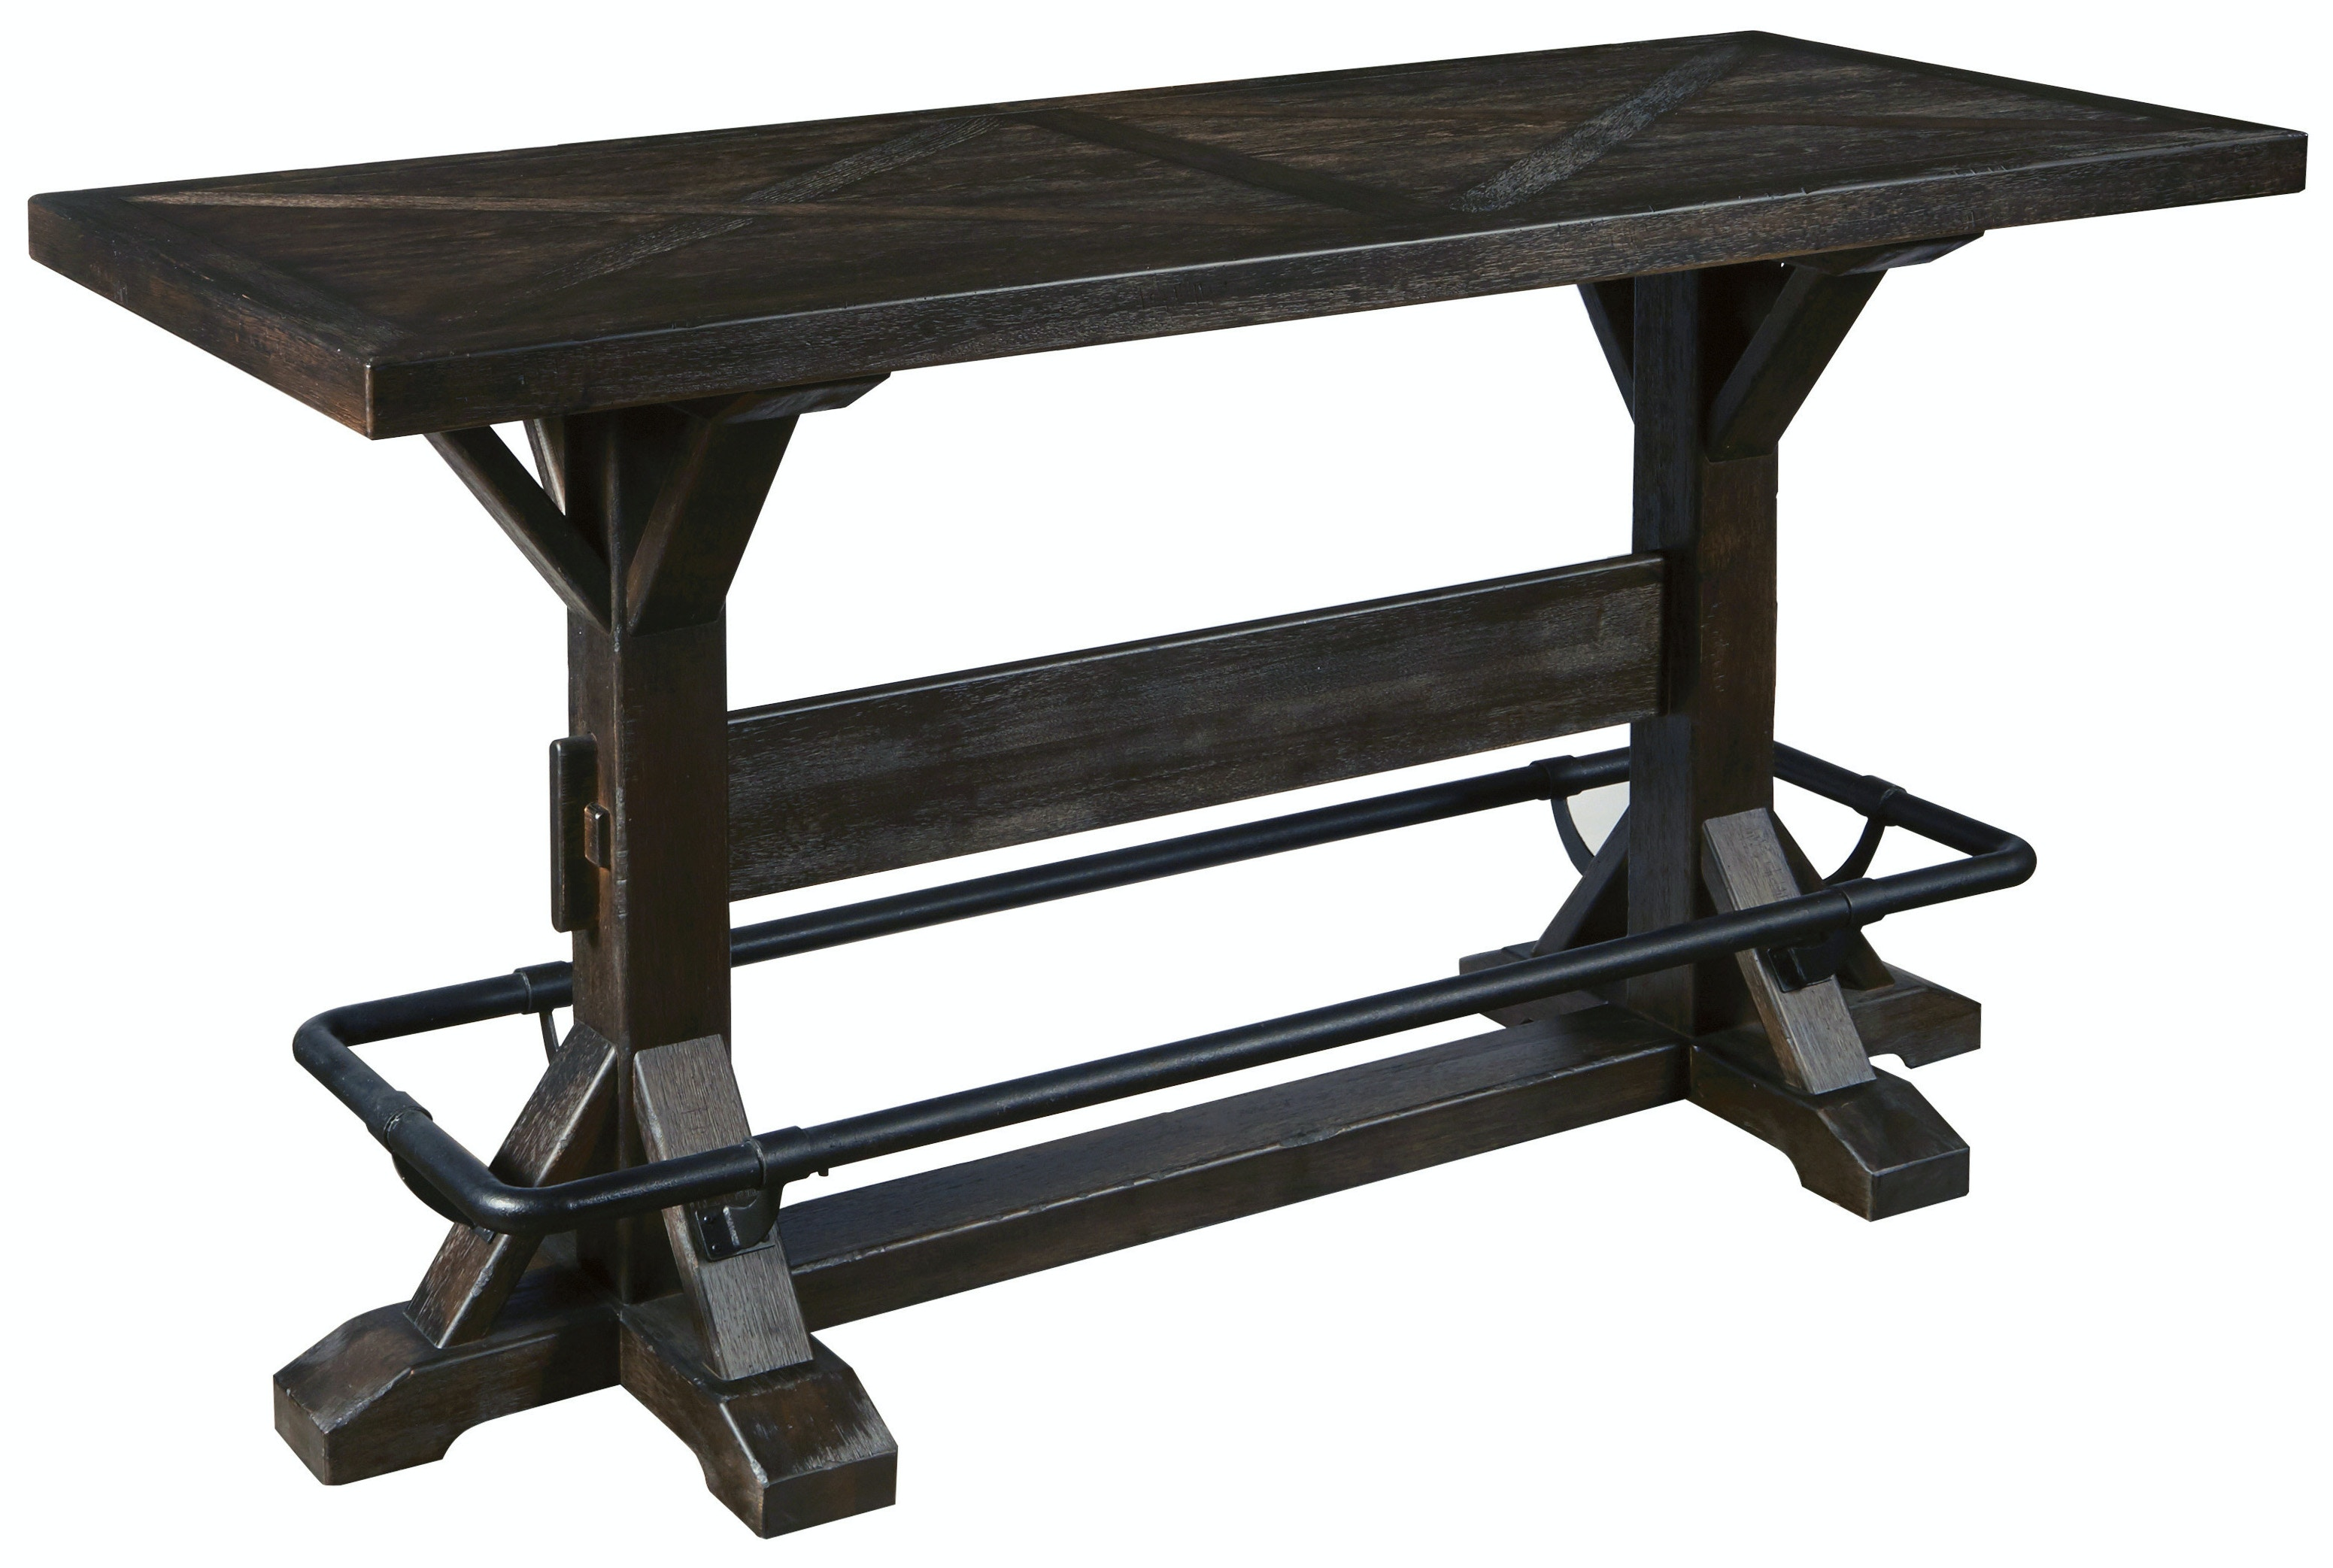 Furniture City Brewing Stout Stand Up Brew Pub Table KT:81992